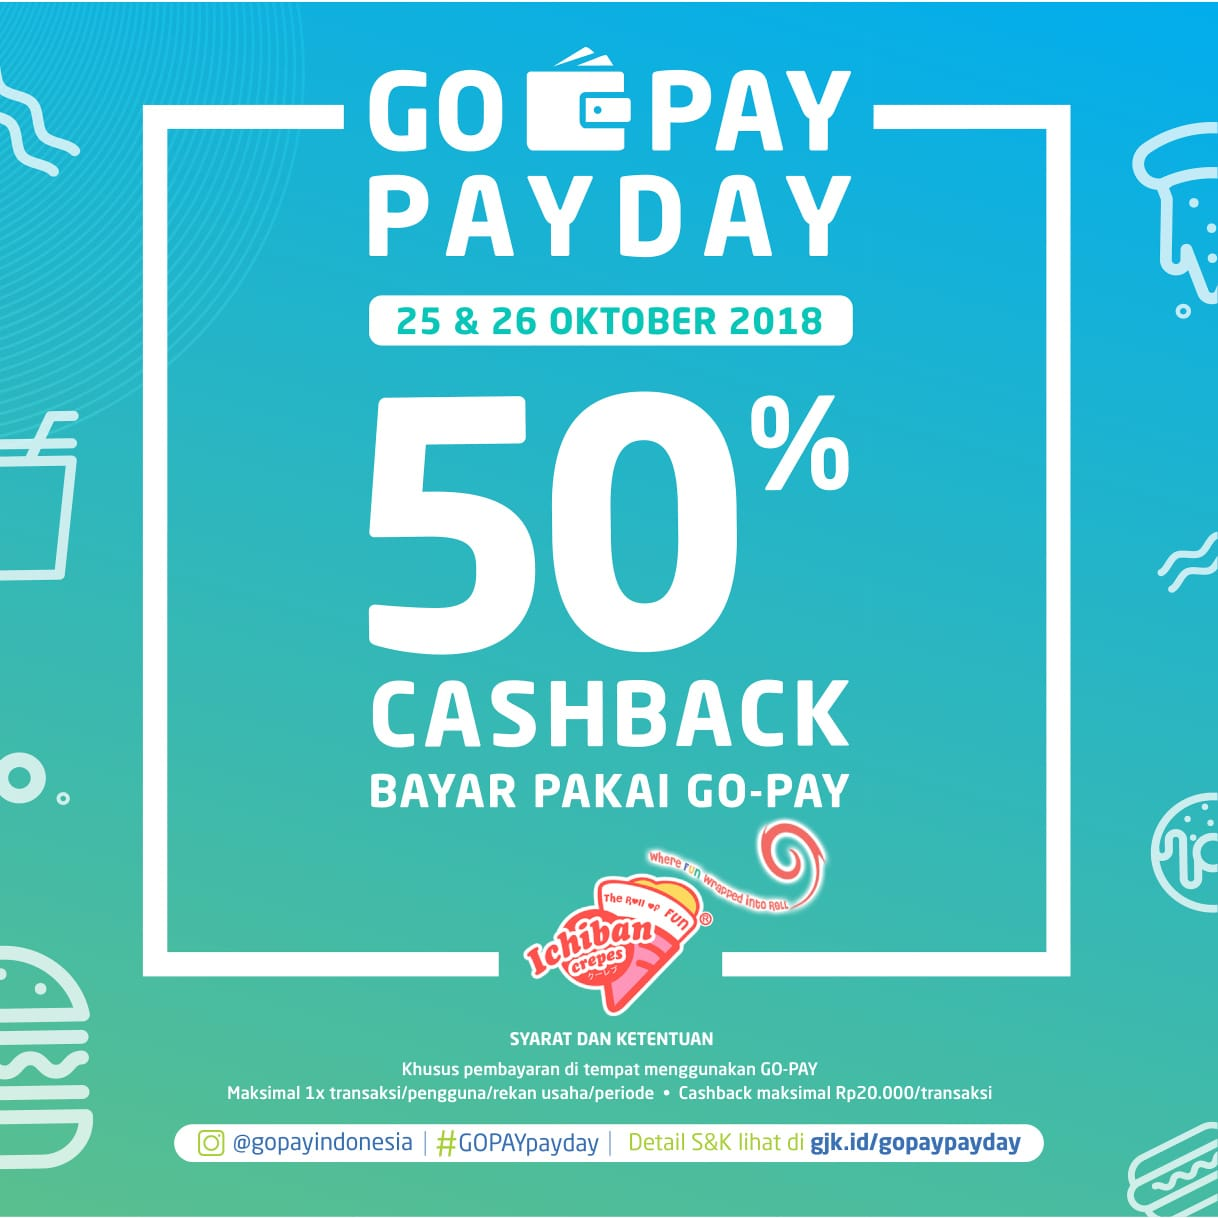 Enjoy 50% Cashback at Ichiban Crepes with Gopay